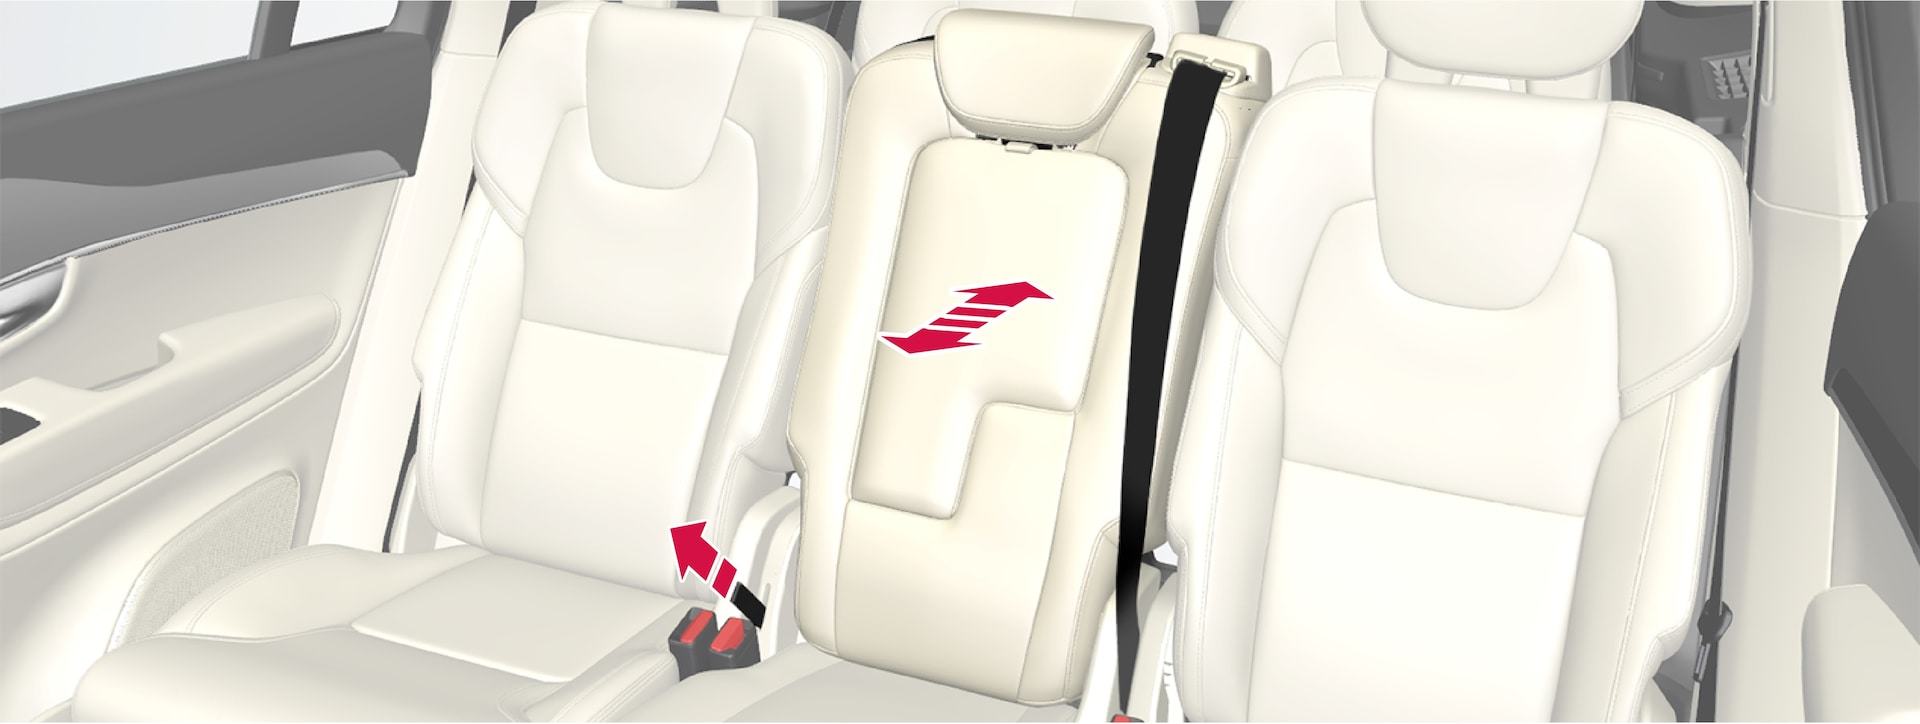 P5-1507-2nd seat row-Centre seat adjusted individually with strap